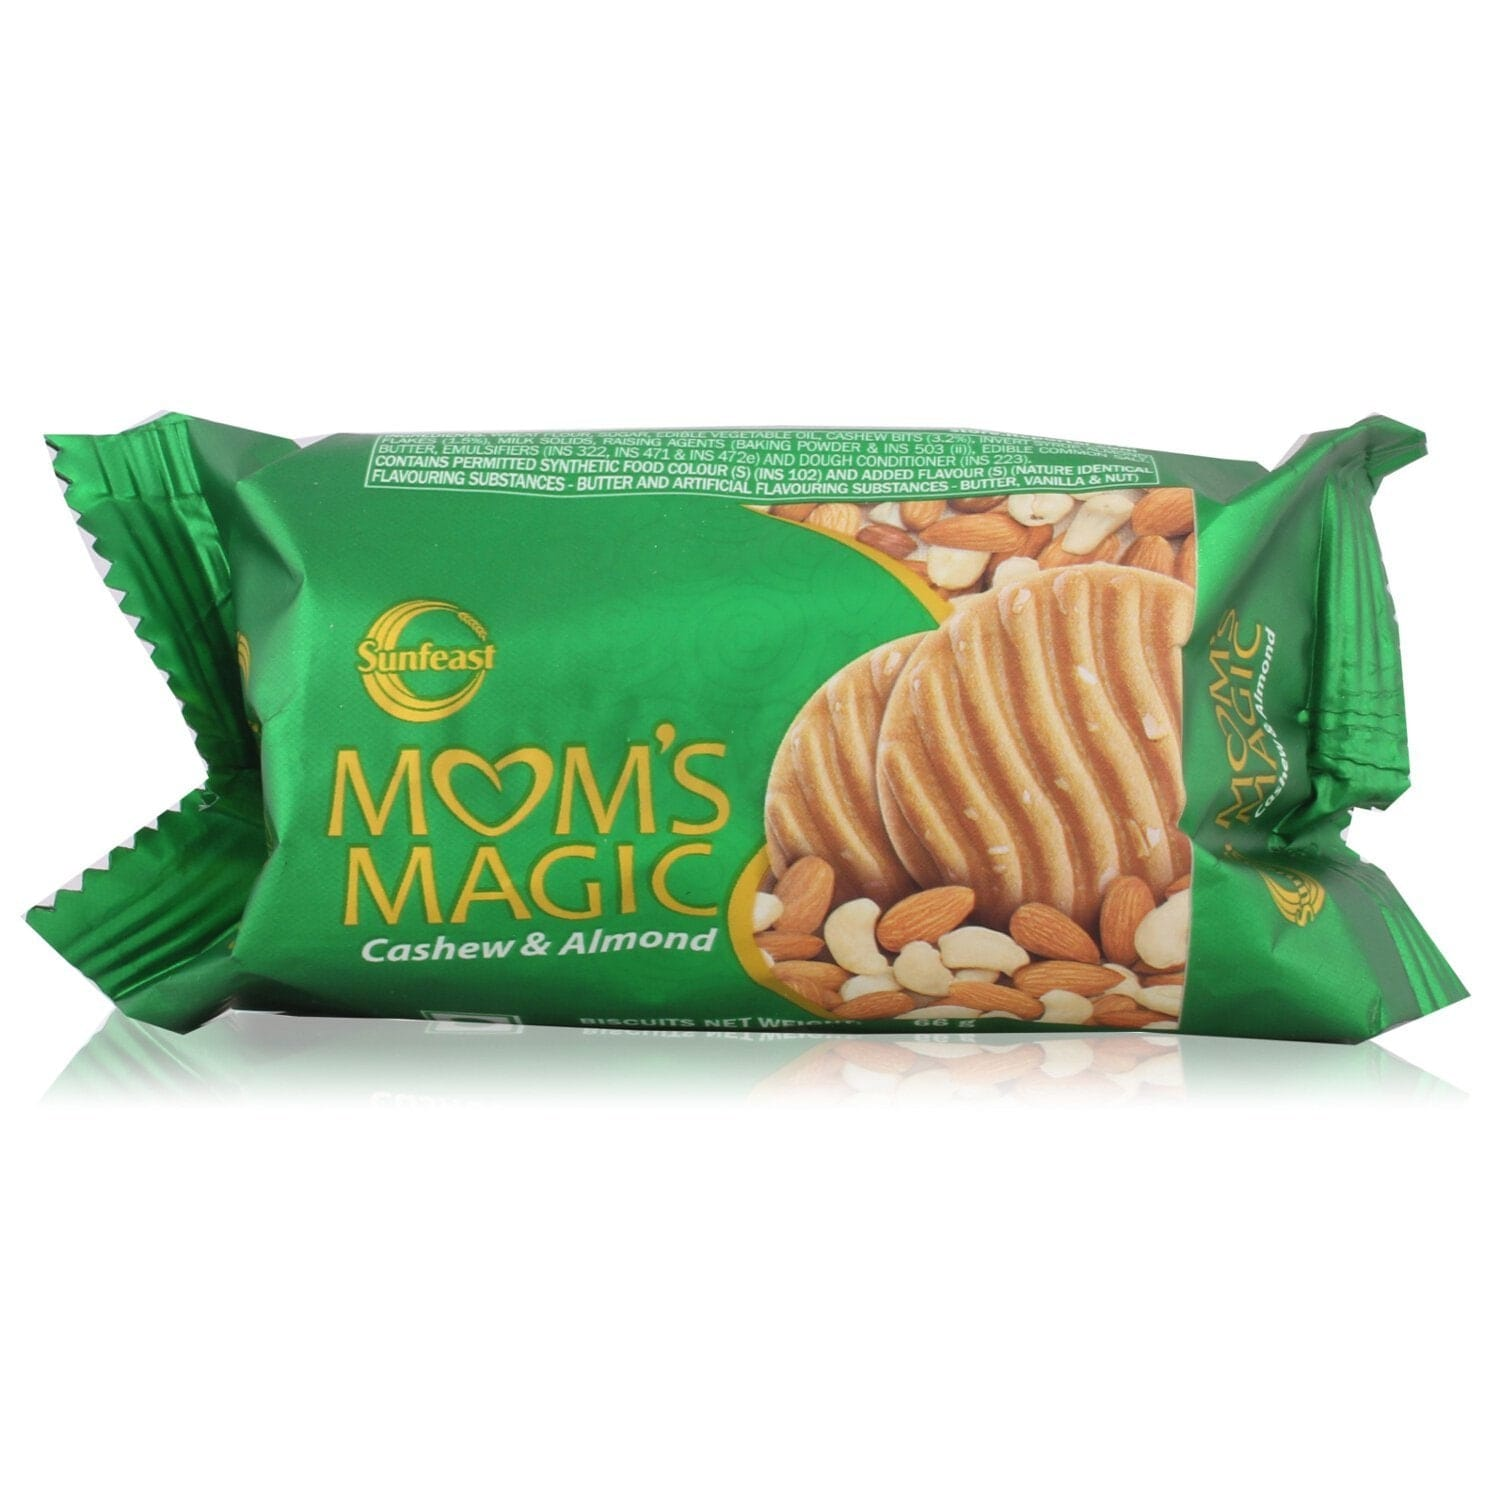 Sunfeast Moms Magic Cashew & Almond Biscuits 58 Gm